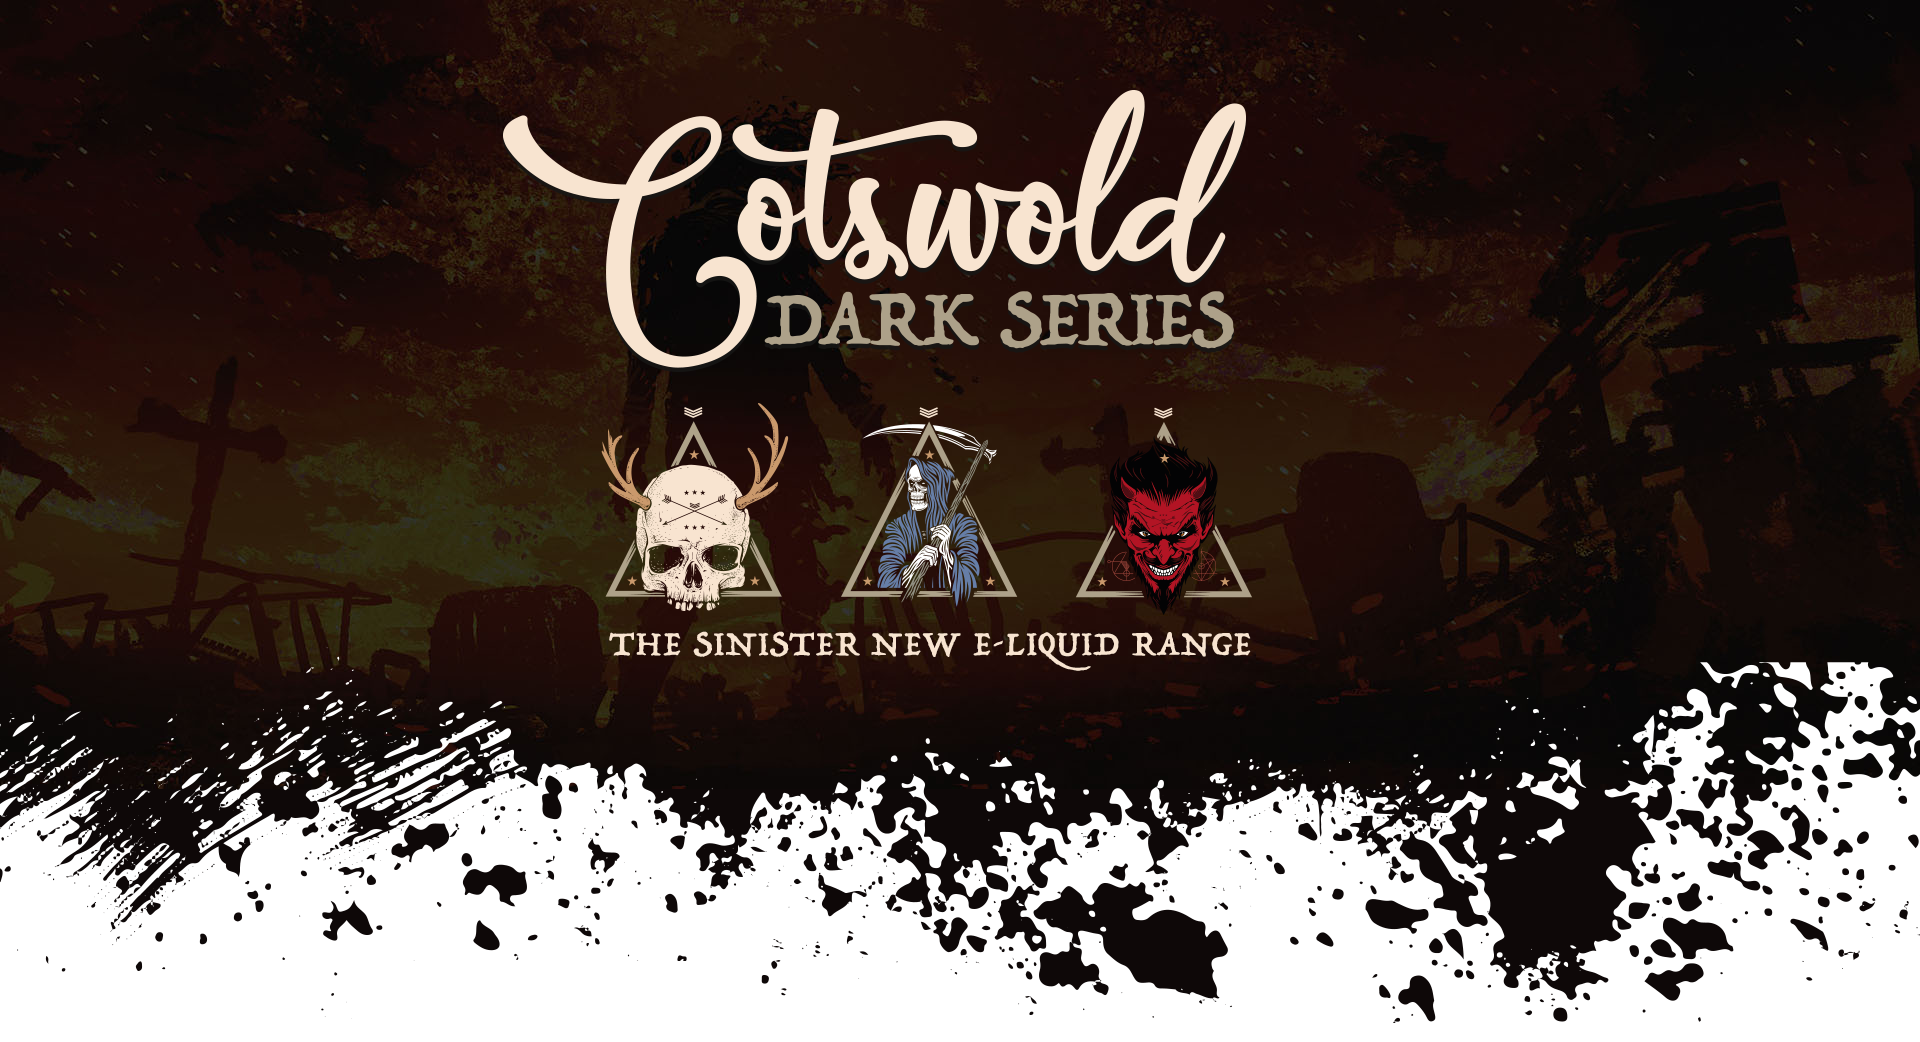 Cotswold Vapour: Dark Series